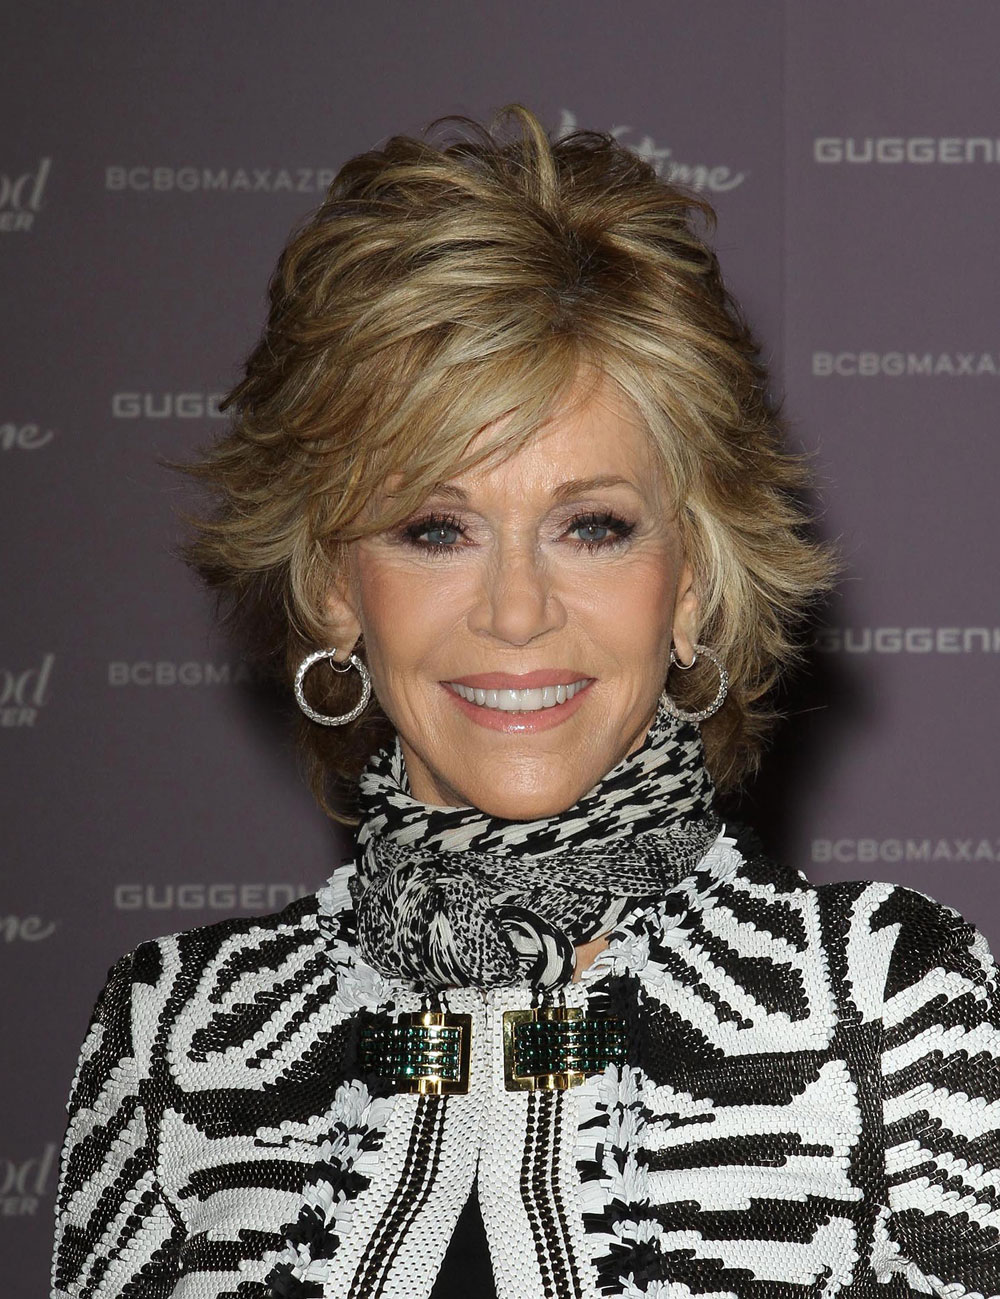 Jane Fonda on her plastic surgery: I'm not brave enough not to do it